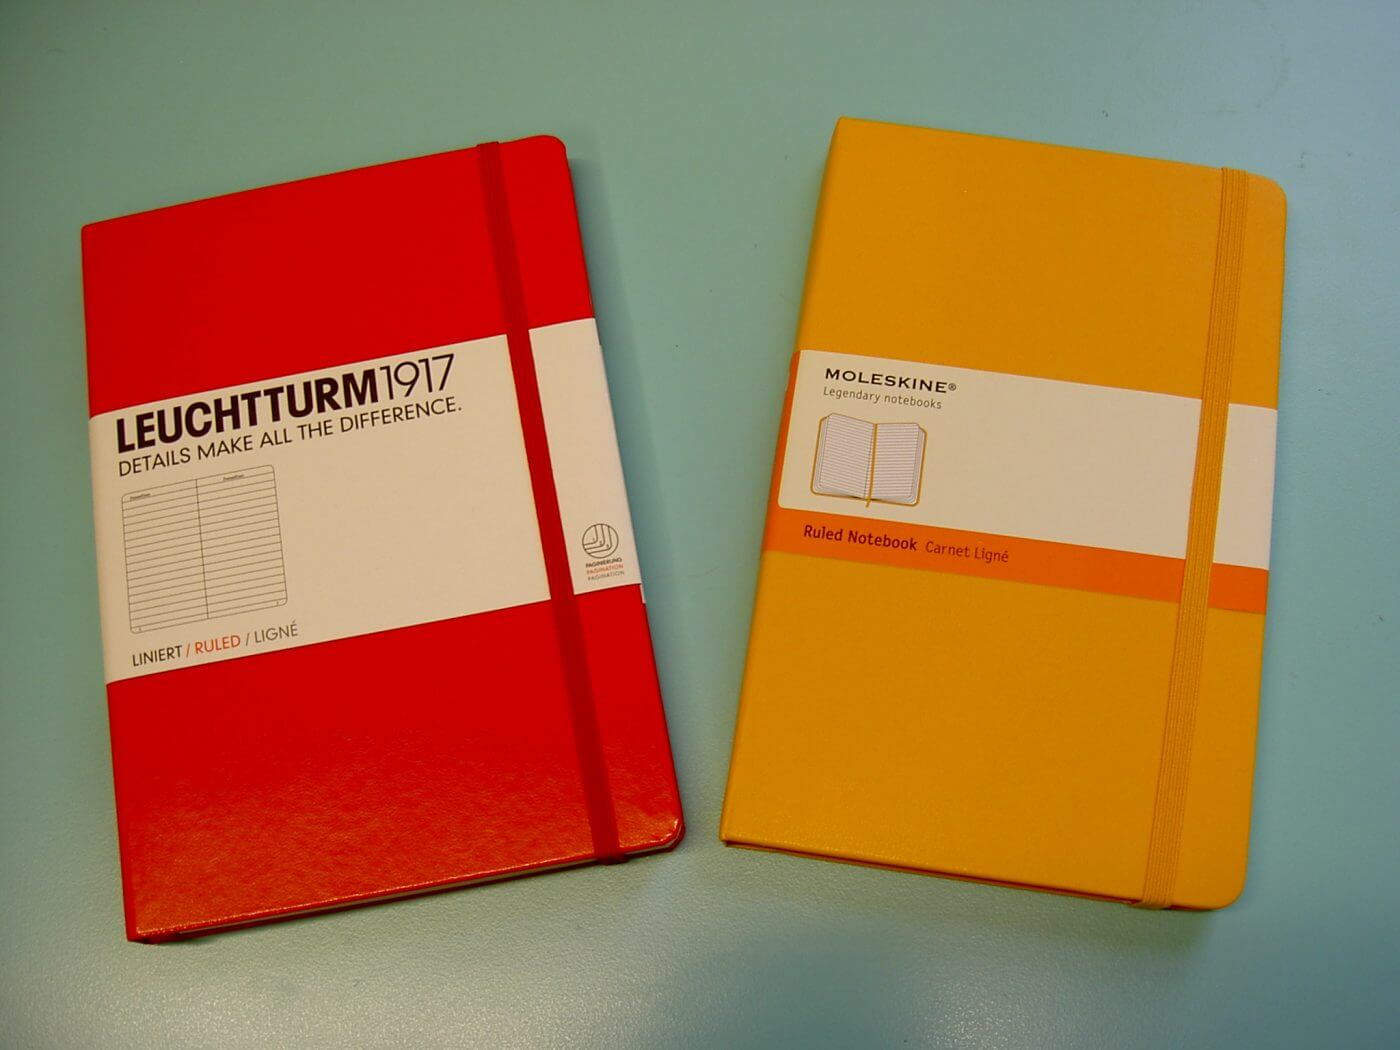 Leuchtturm1917 and Moleskine Notebooks